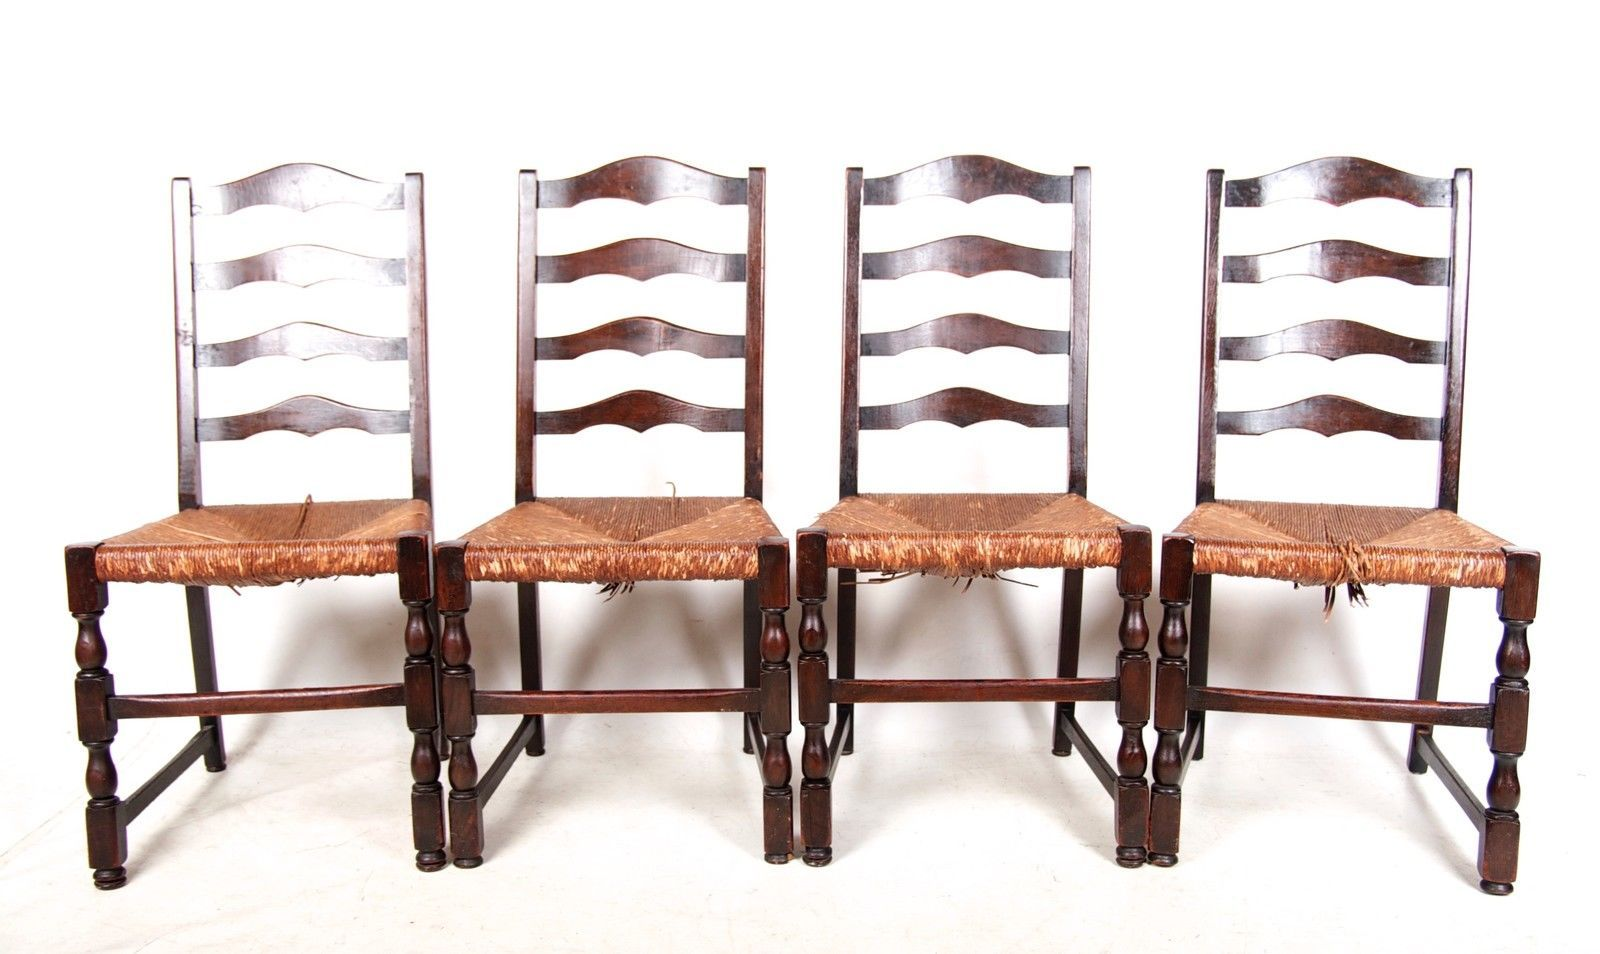 Oak Ladderback Dining Chairs 1940s Set of 4 for sale at Pamono. 1940s Furniture For Sale